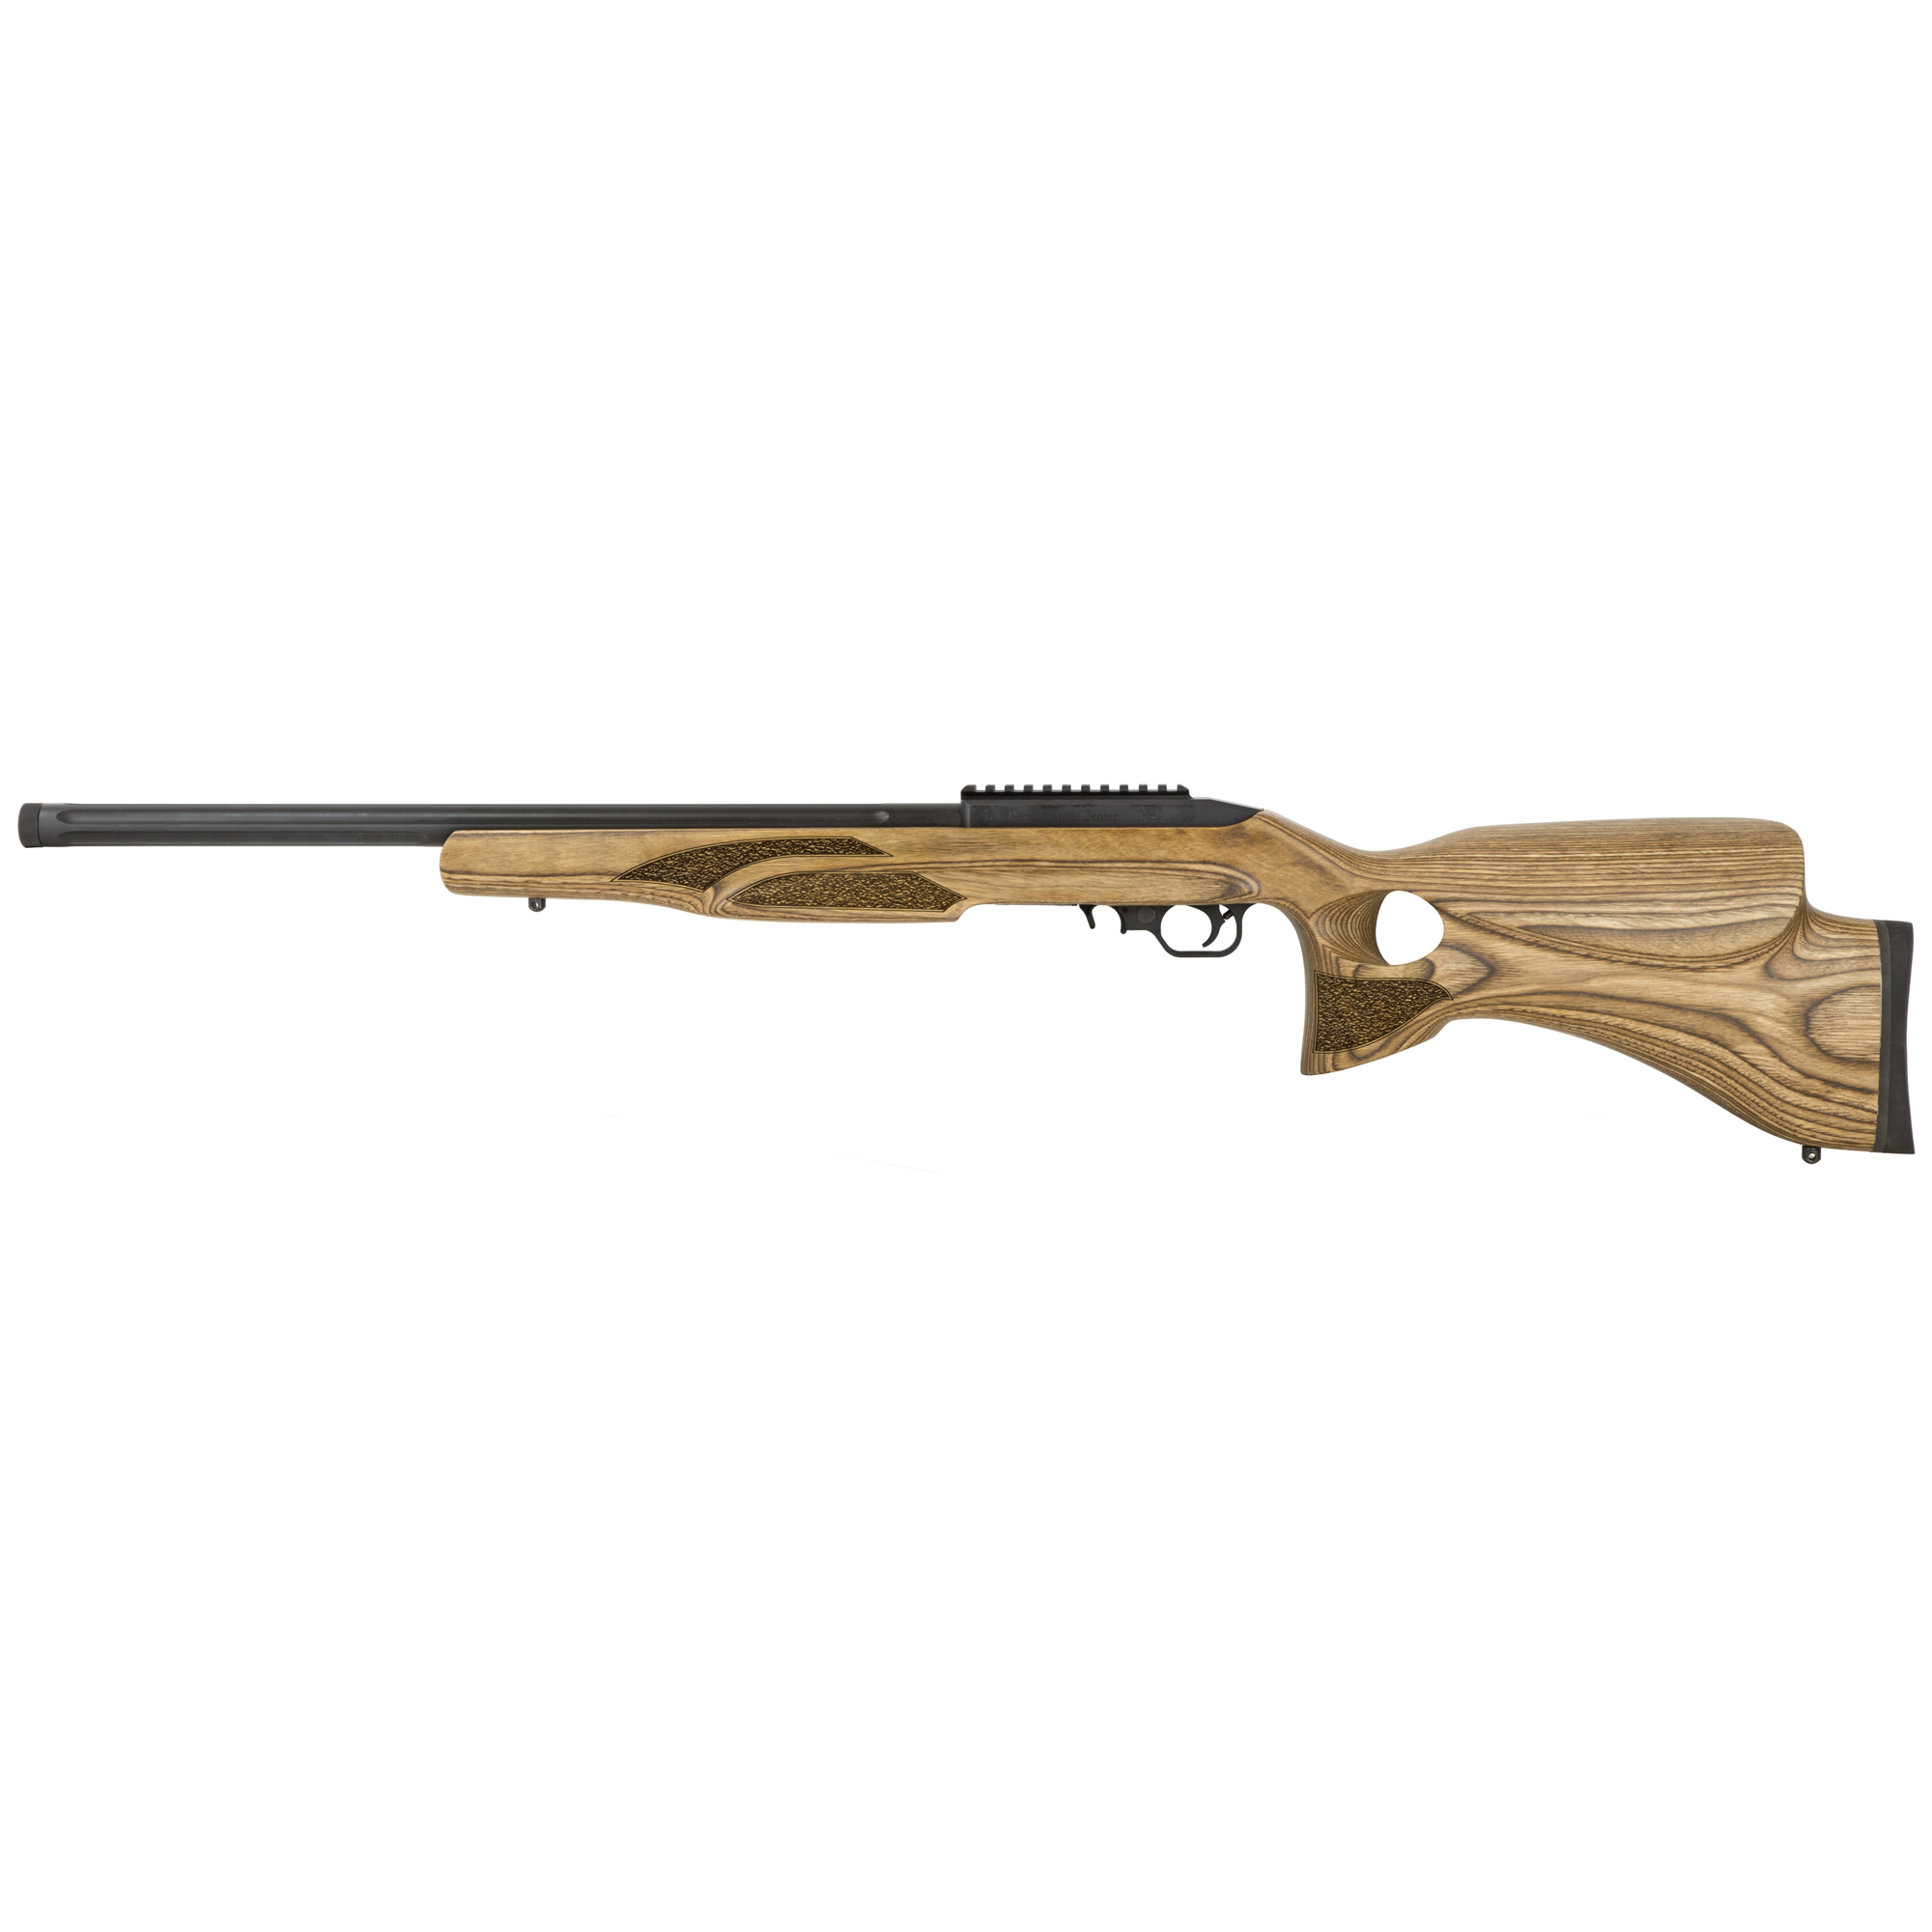 """Thompson Center Arms T/CR22 is a 10-round 22 LR caliber rifle with a 20"""" threaded barrel with a 1:15 rate of twist. It features an Altamont laminated thumbhole laminate stock in a matte black finish."""